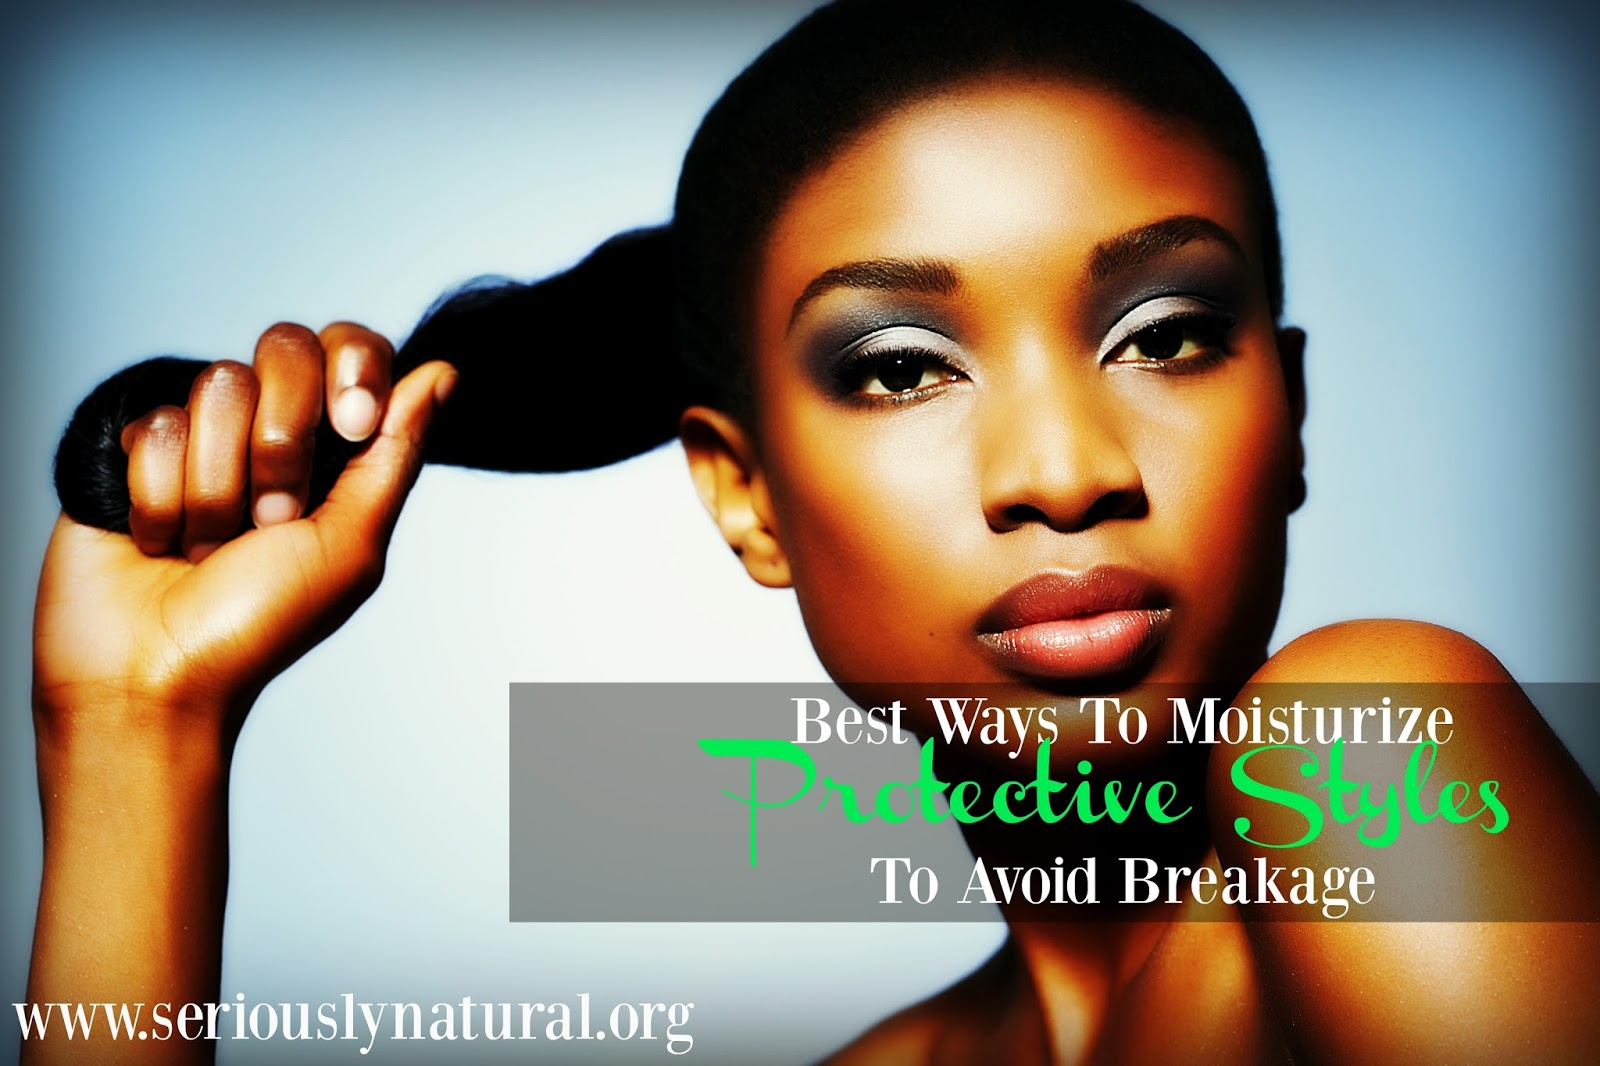 Best Ways To Moisturize Protective Styles To Avoid Breakage